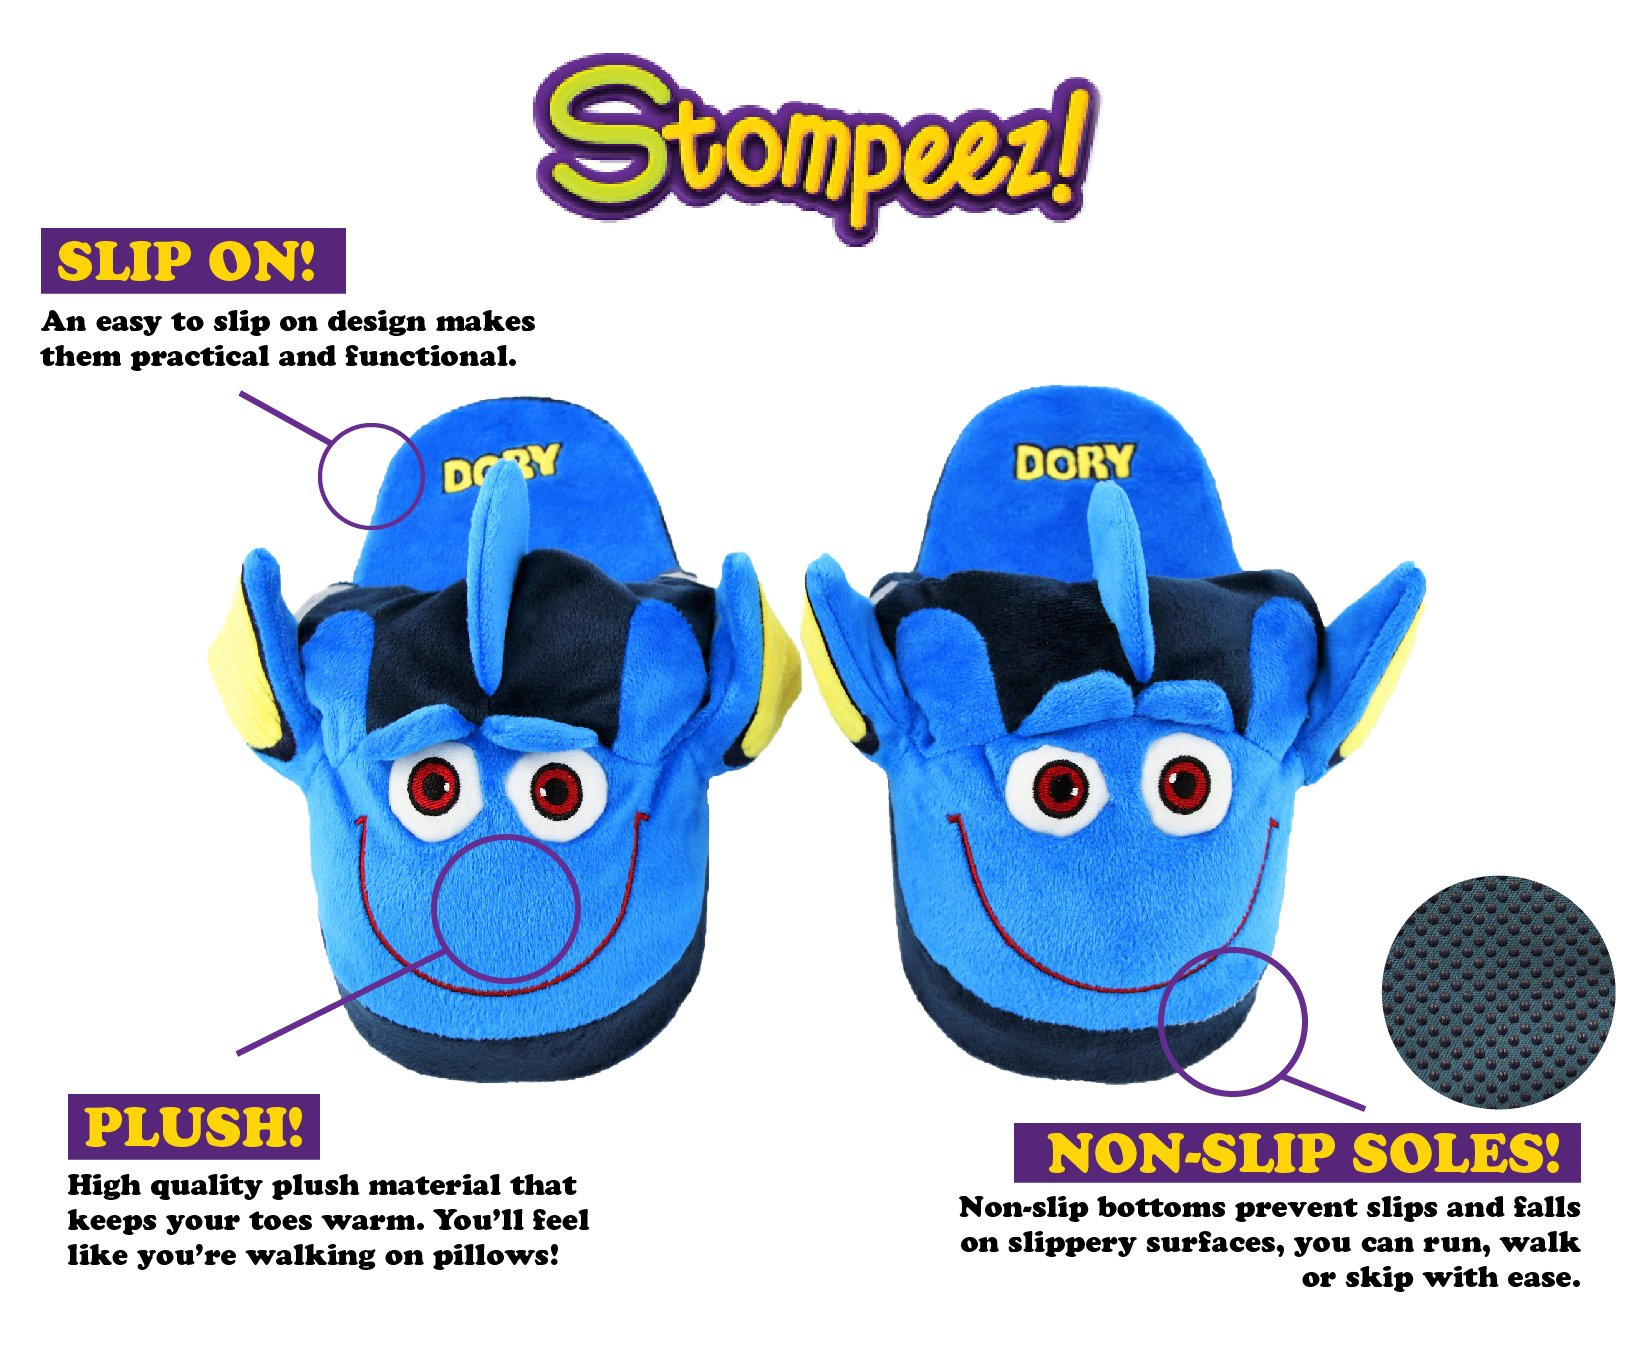 Stompeez Animated Dory Plush Slippers - Ultra Soft and Fuzzy - Fins Flap and Flutter as You Walk - Large by Stompeez (Image #3)